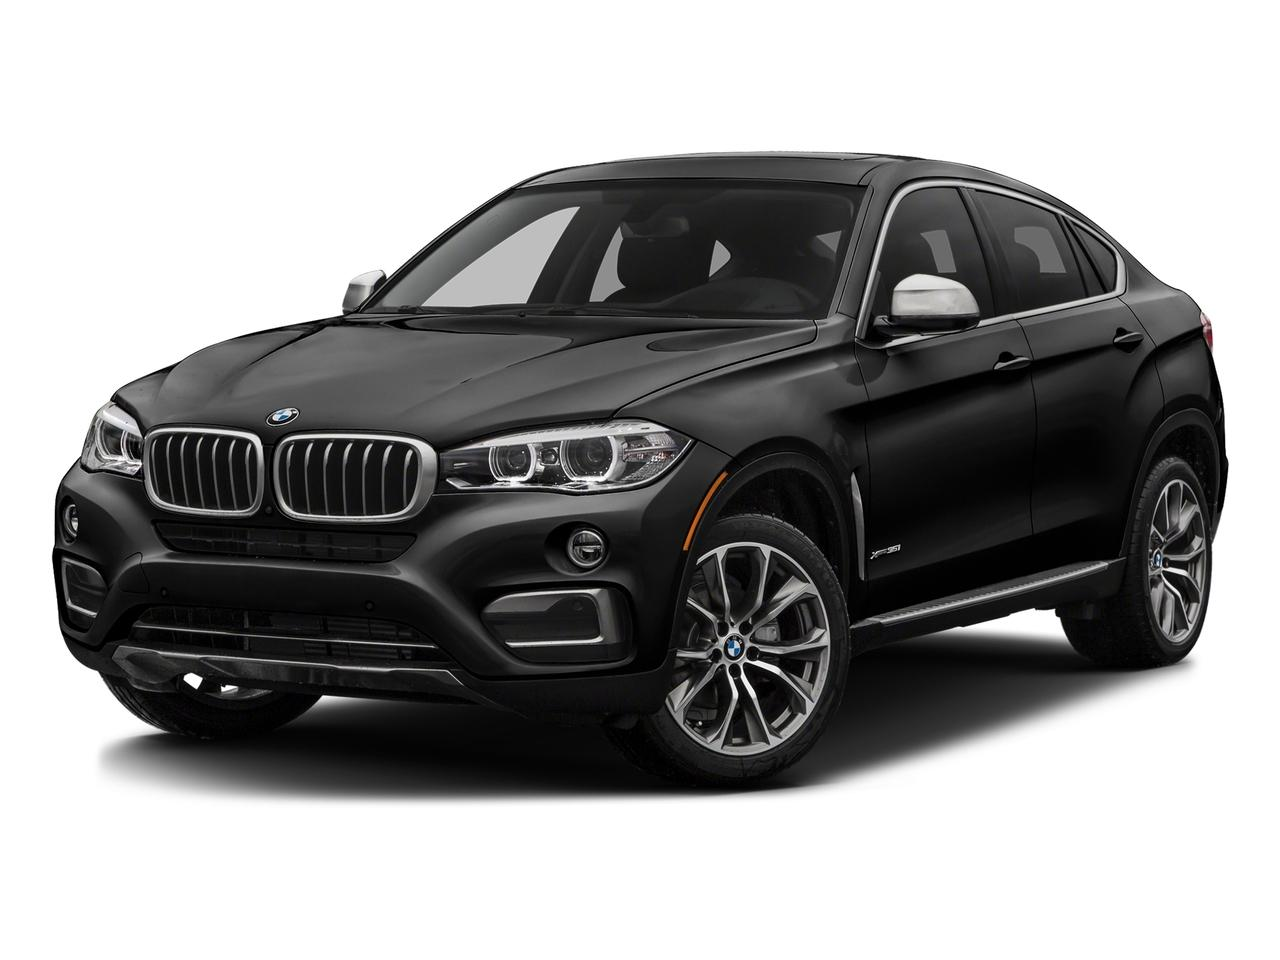 2016 BMW X6 sDrive35i Vehicle Photo in TEMPLE, TX 76504-3447